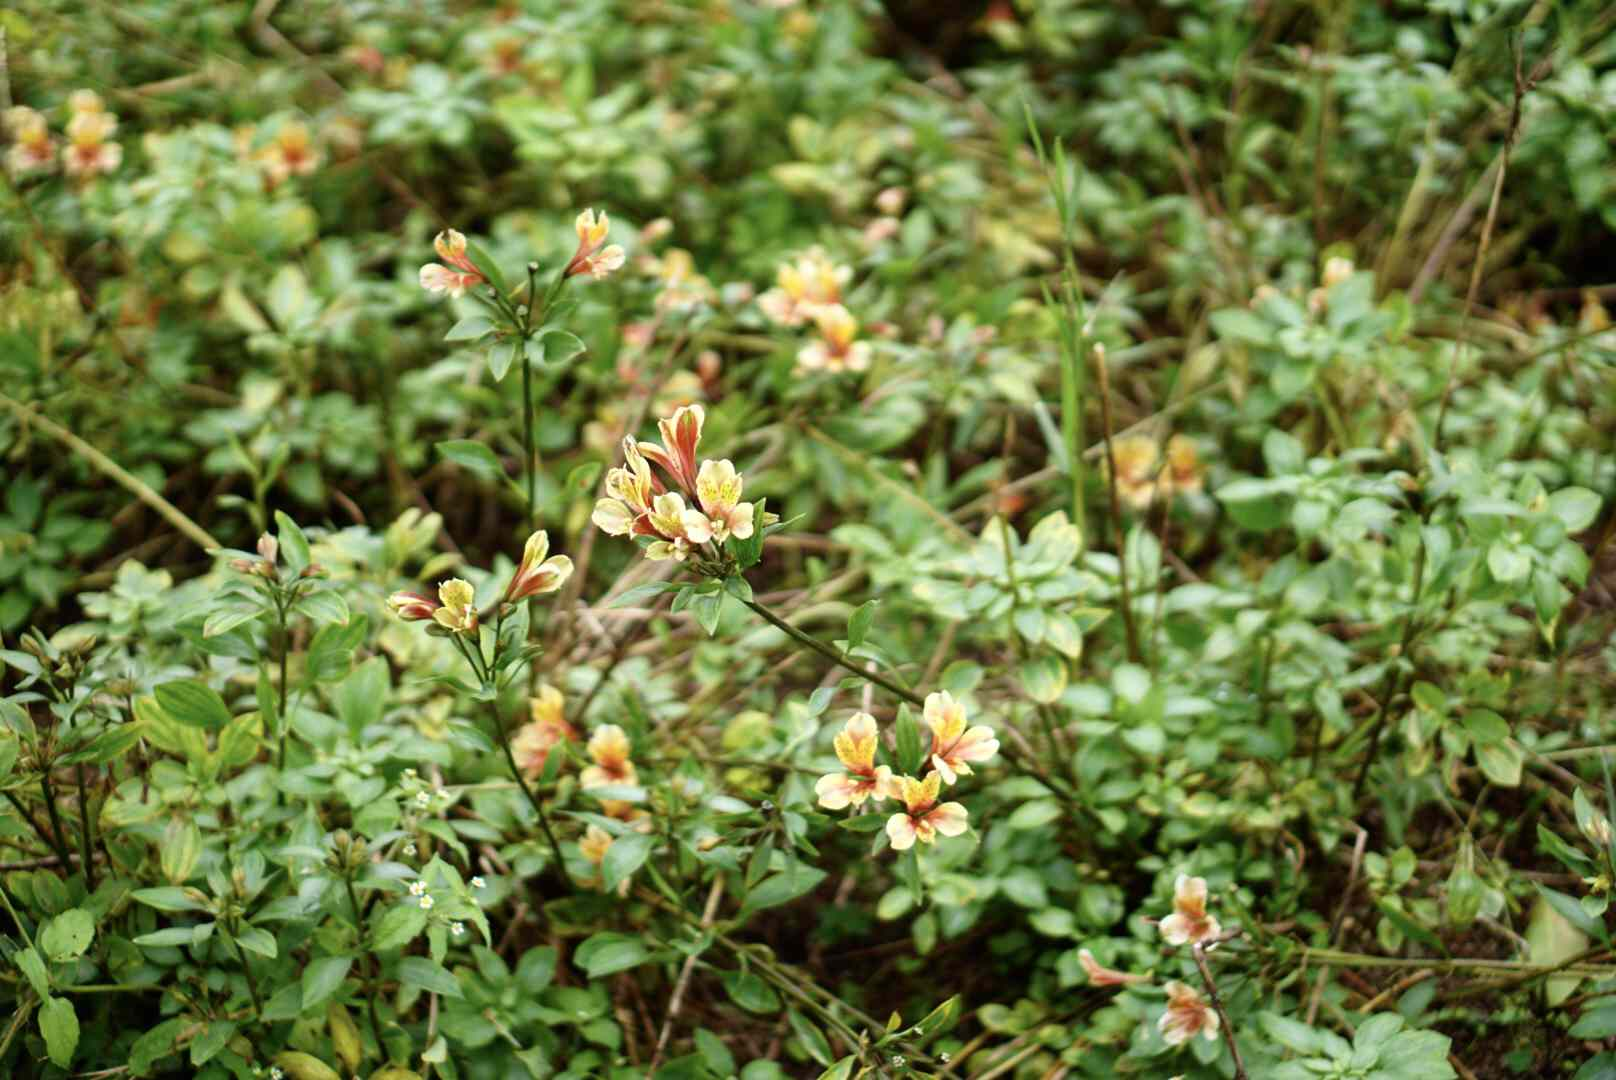 Peruvian lily flowers in bush